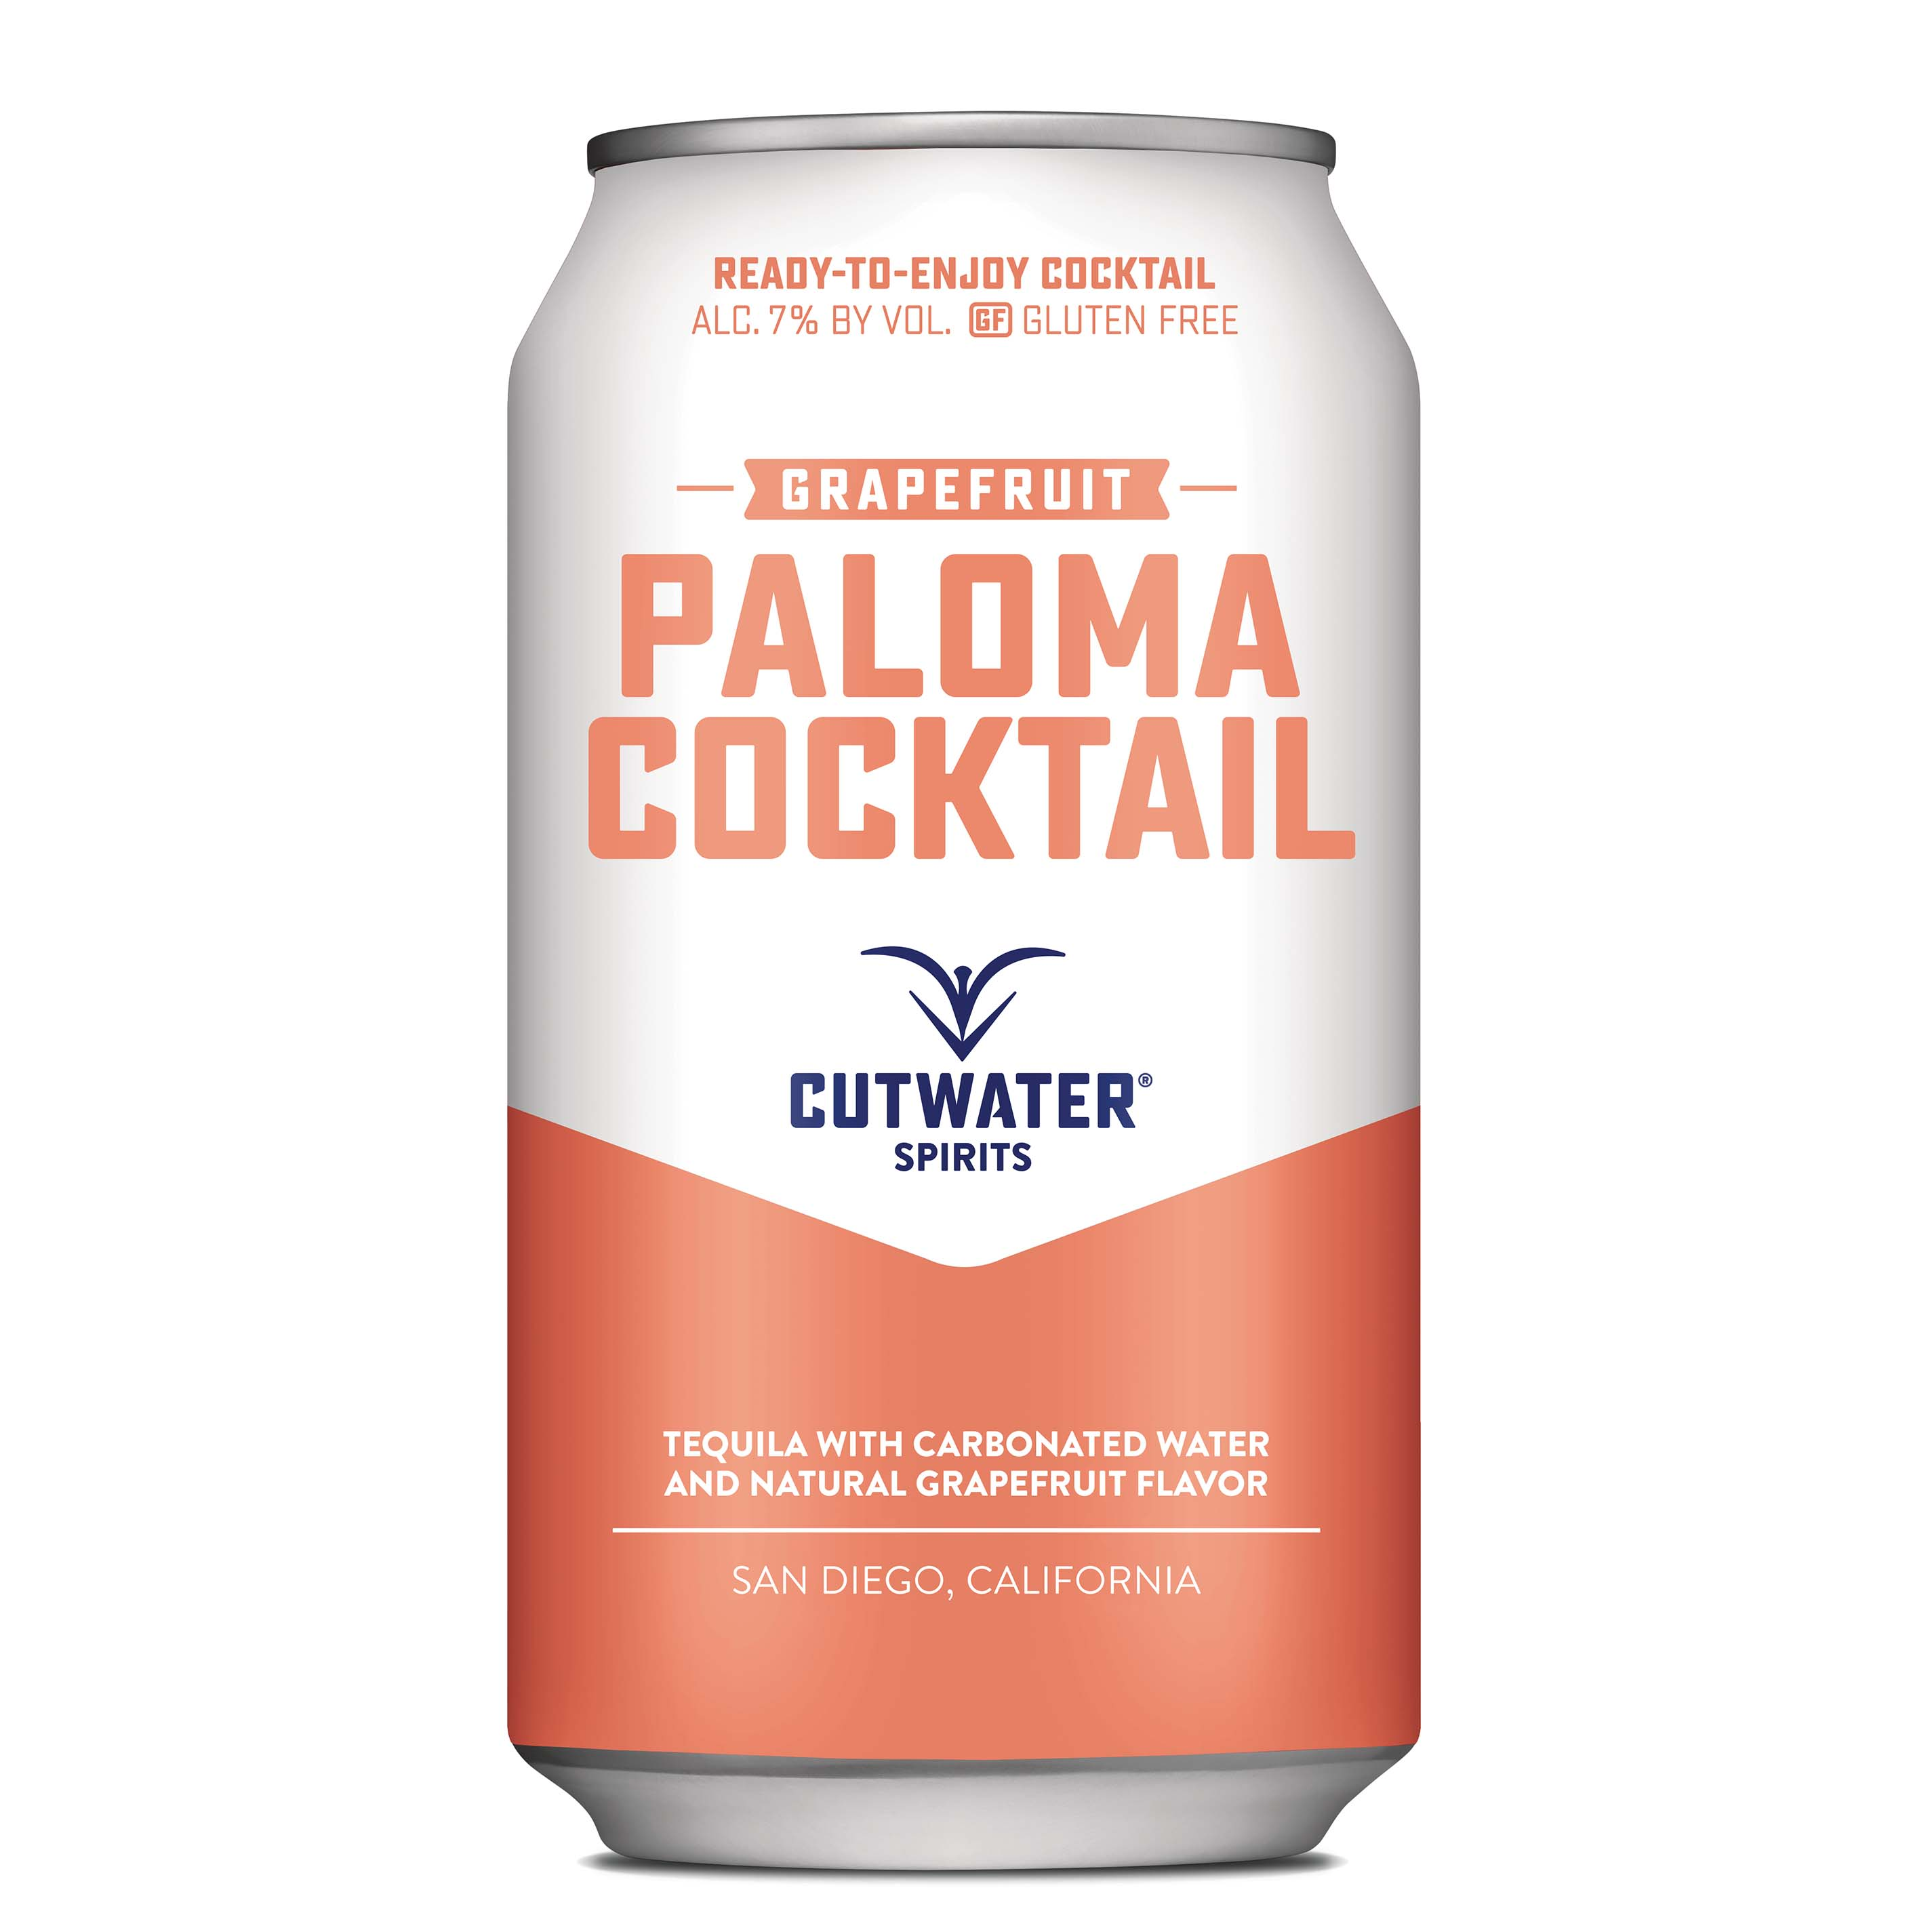 Cutwater, Paloma Cocktail